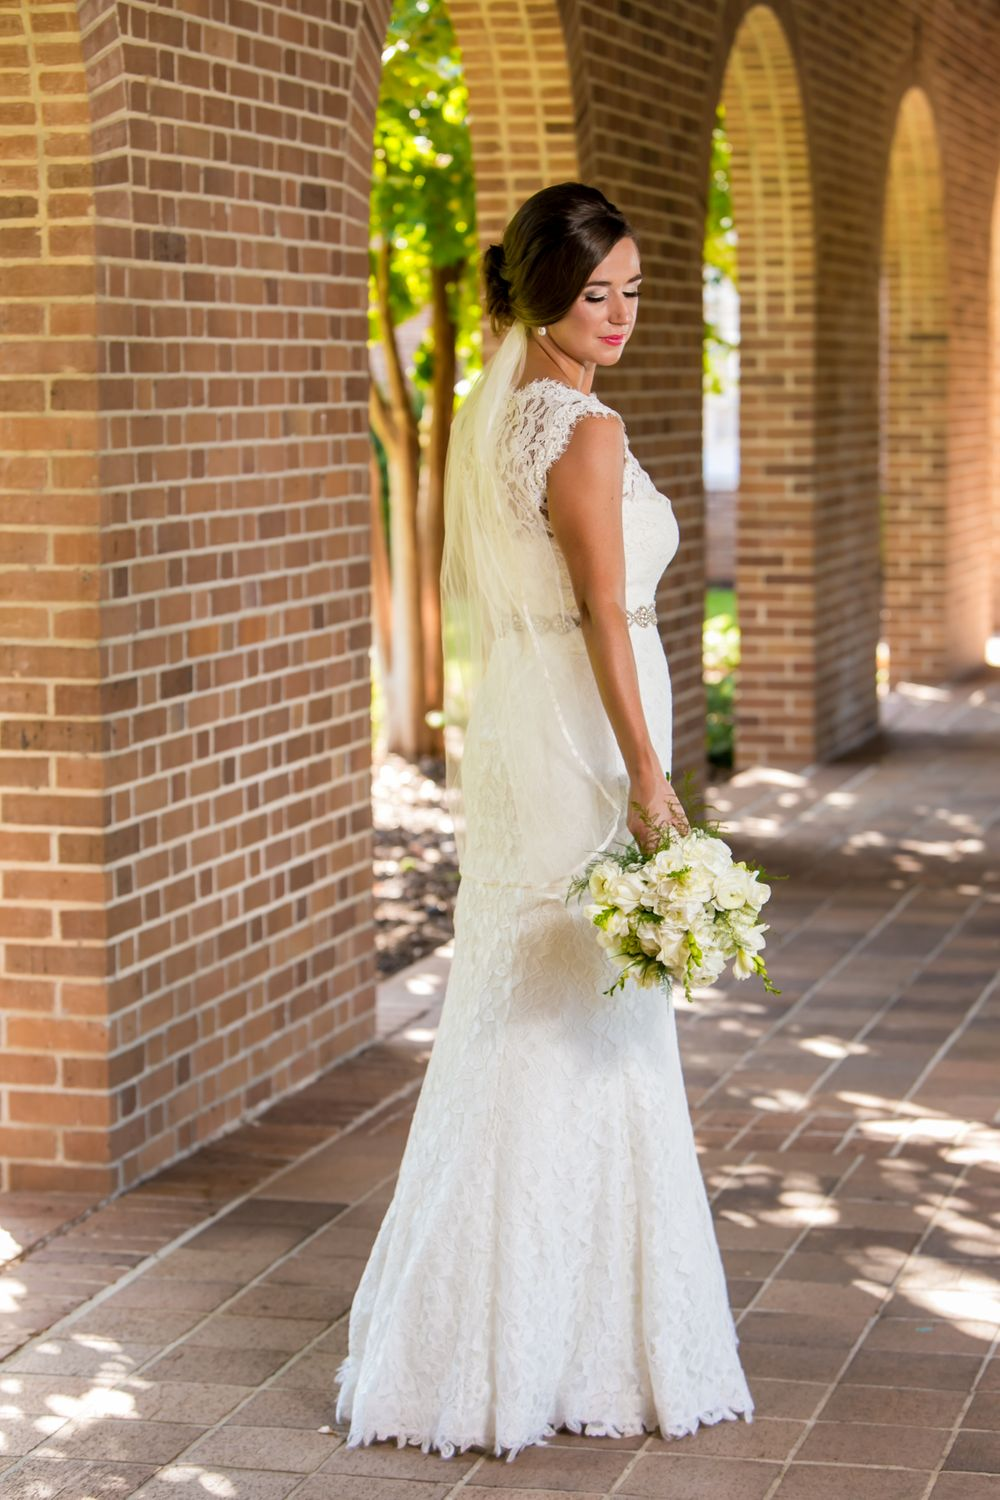 Bridal portrait of Page before her wedding at wedding at Eastminster Presbyterian Church in Columbia, SC.